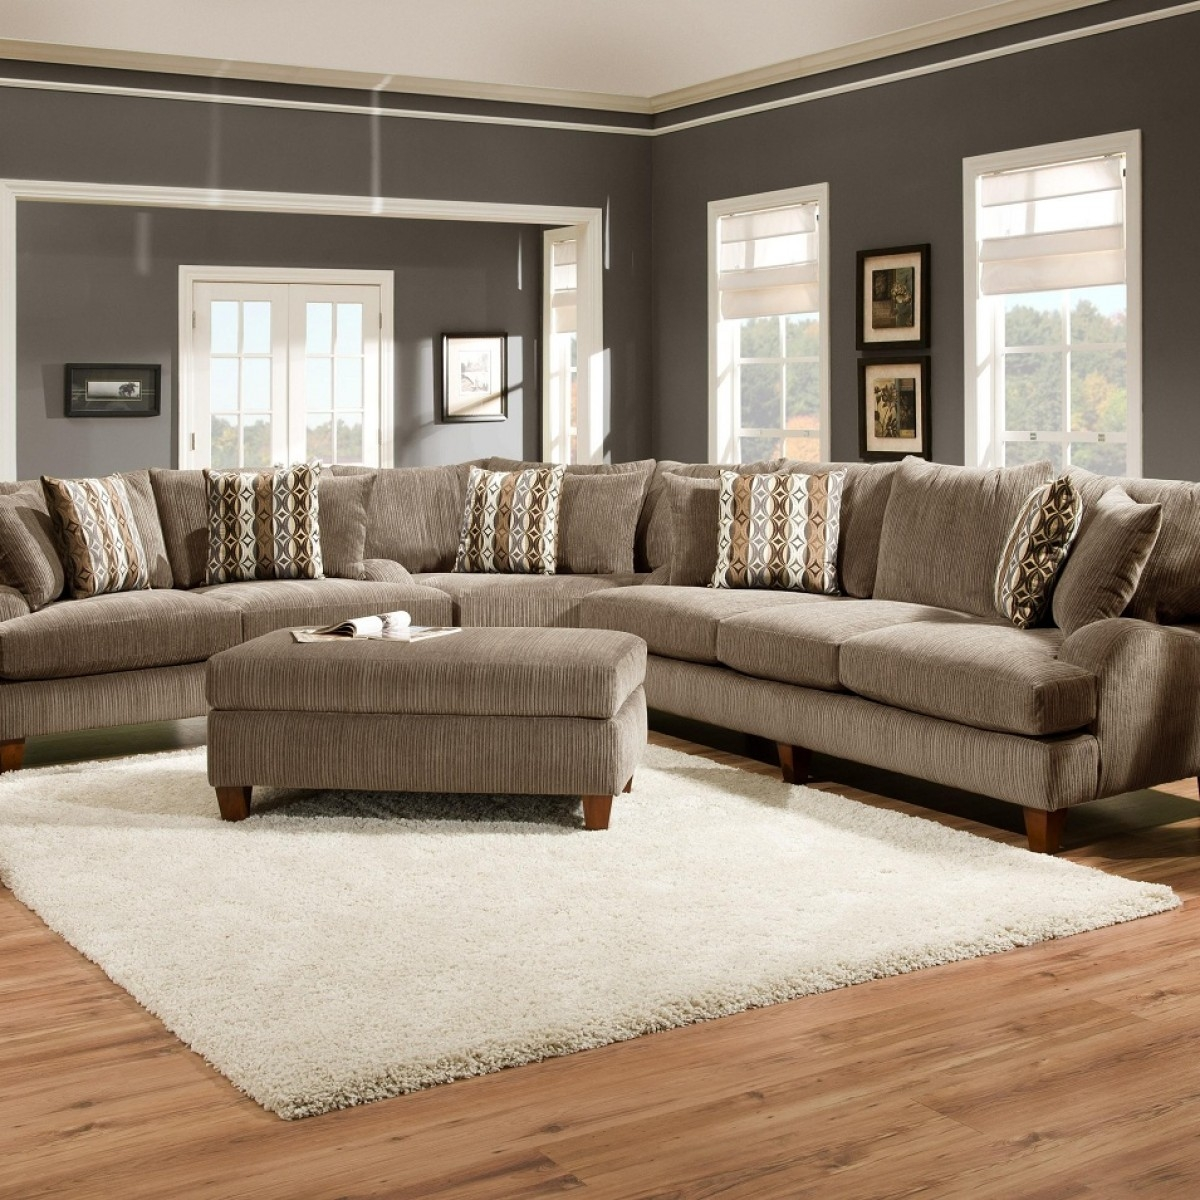 Extra Large Sectional Sofas For An Extra Large Living Room Pertaining To Extra Large Sectional Sofas (View 14 of 15)